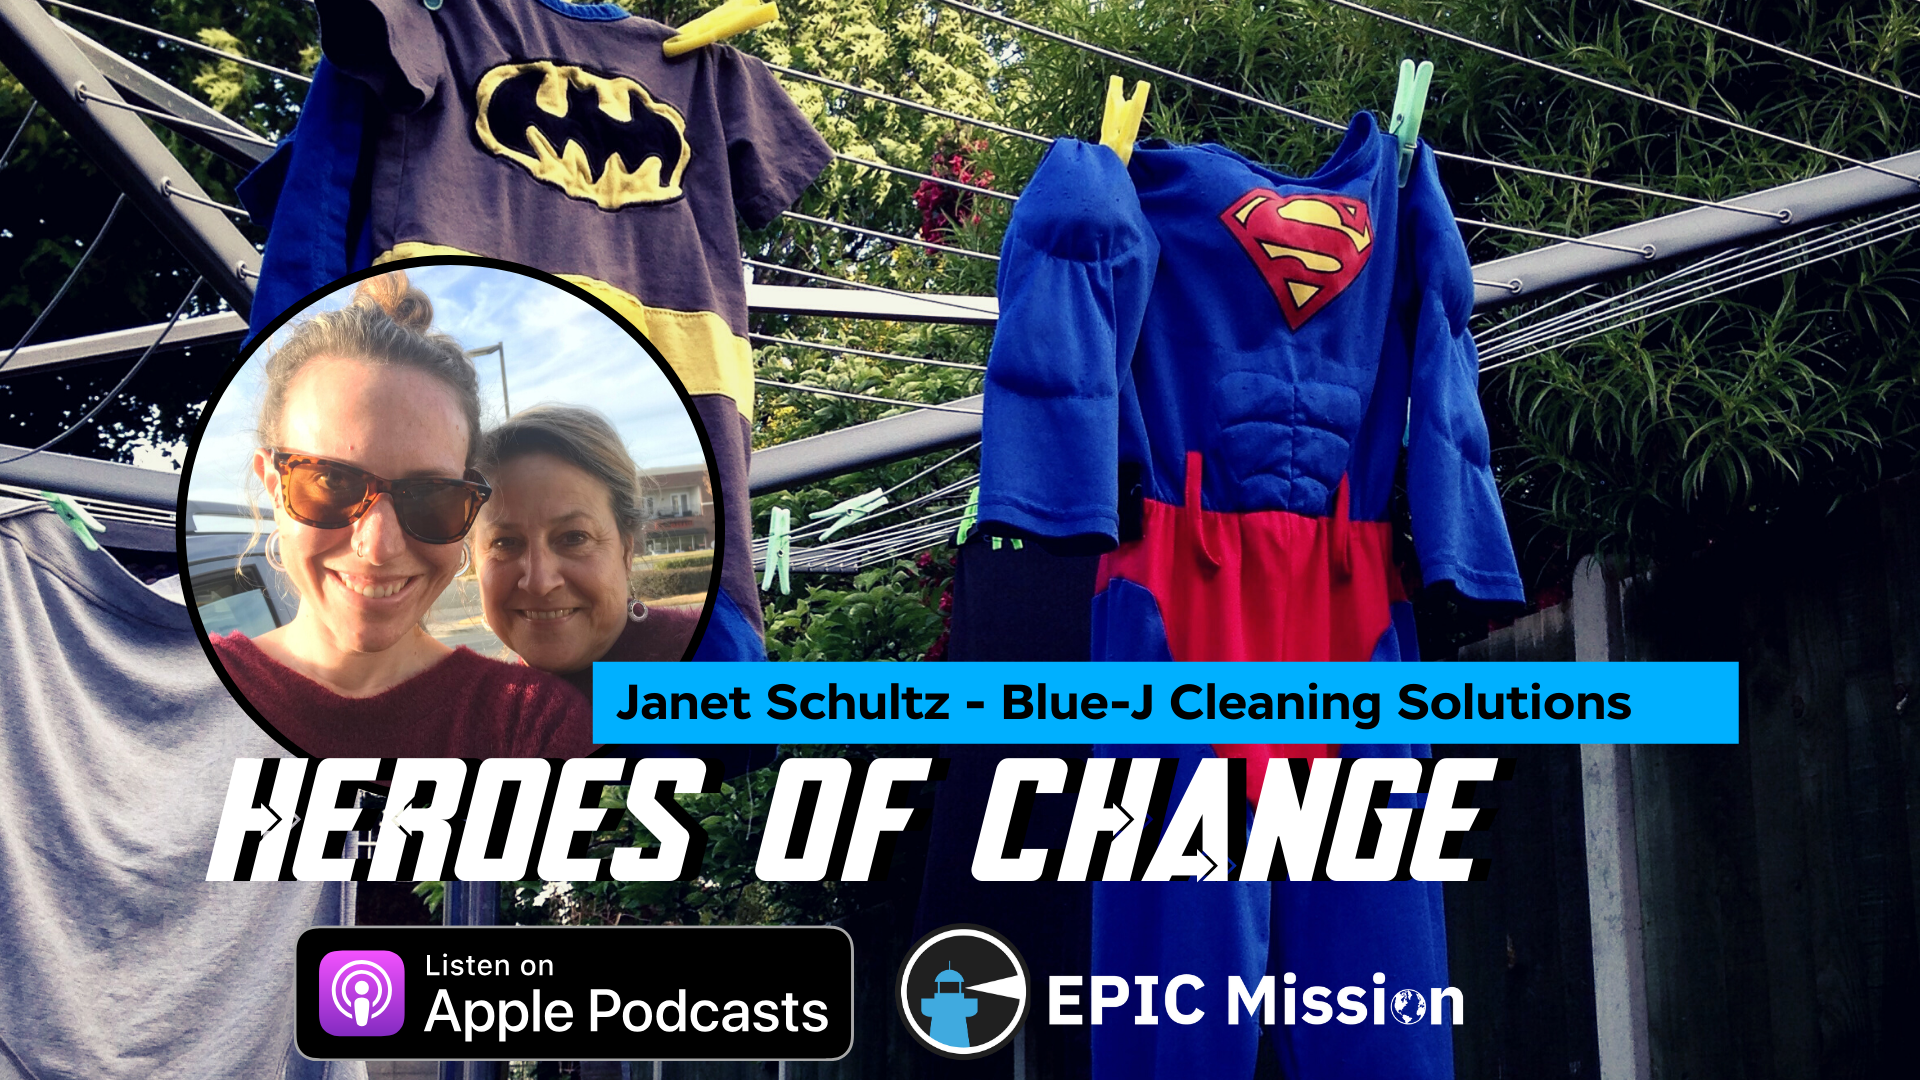 Heroes of Change: Janet Schultz of Blue-J Cleaning Solutions